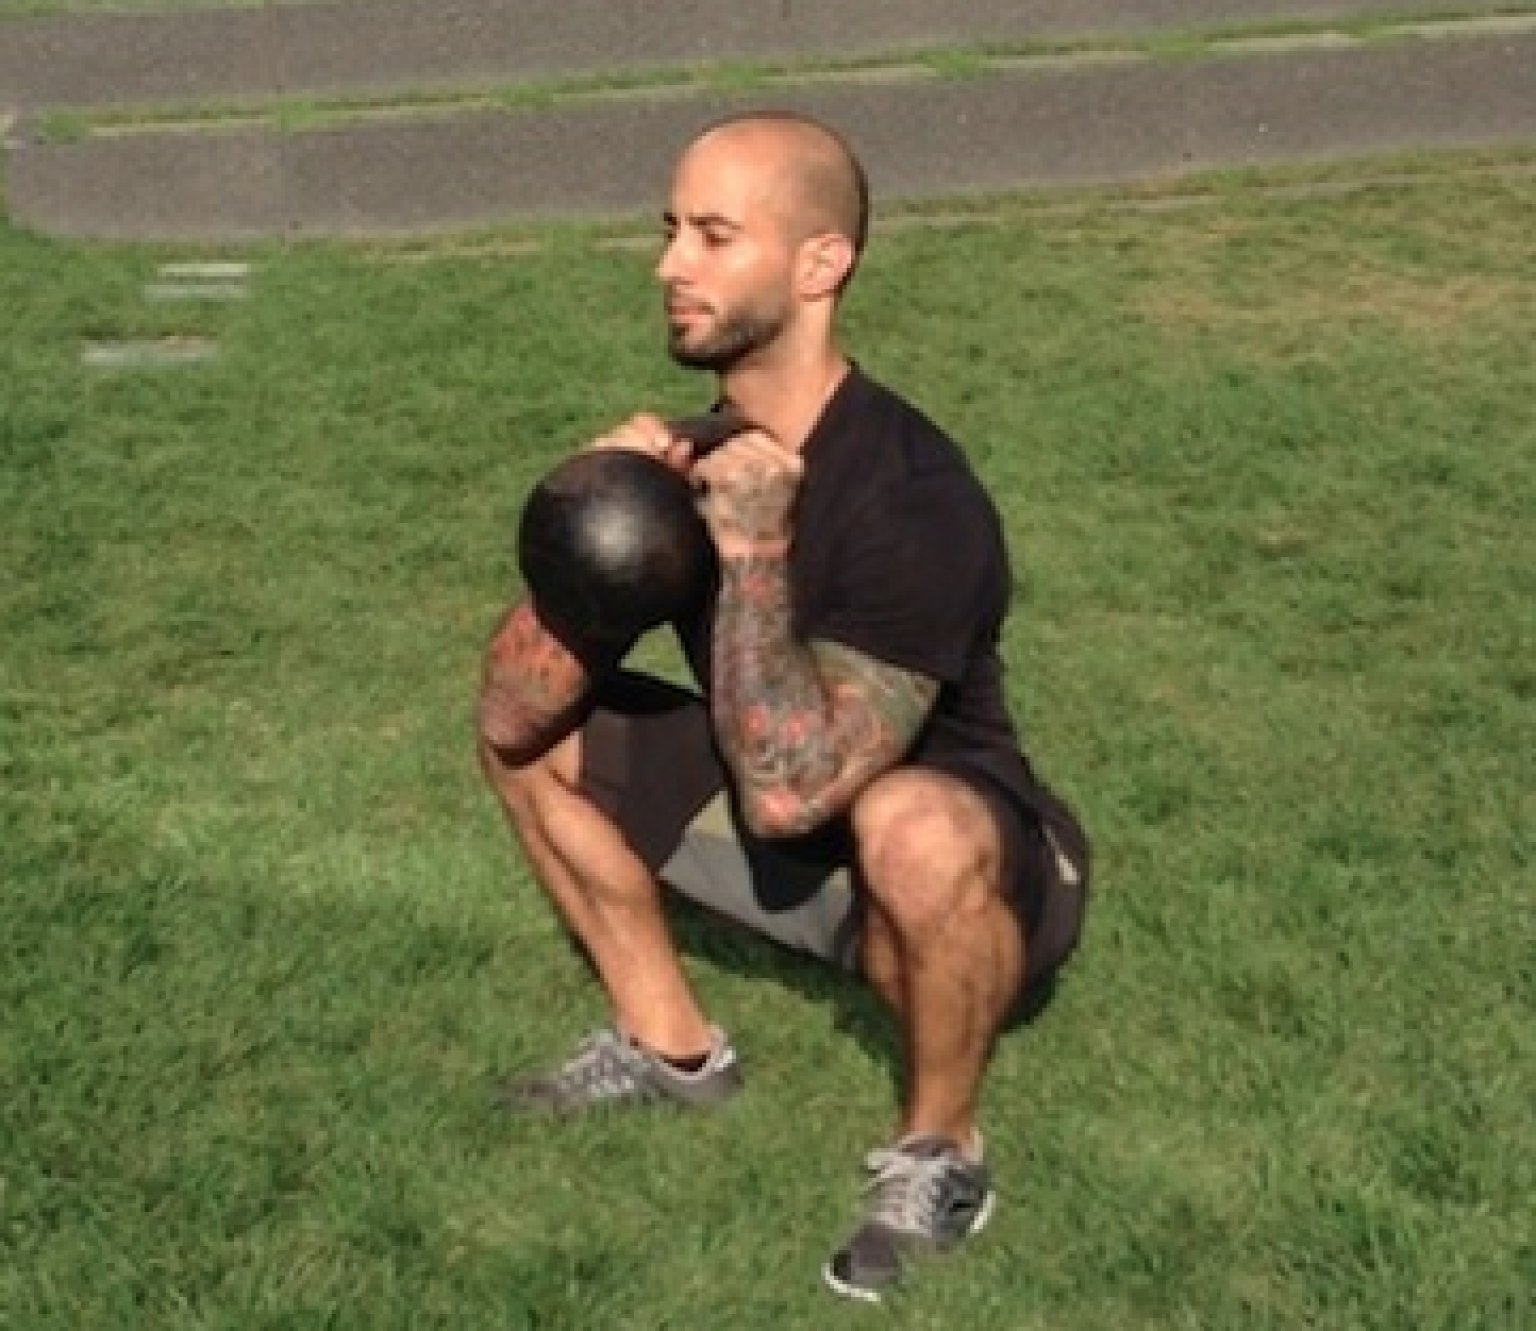 Kettlebell Training For Athletes: 5 Strength-Building Exercises For A Better Yoga Practice